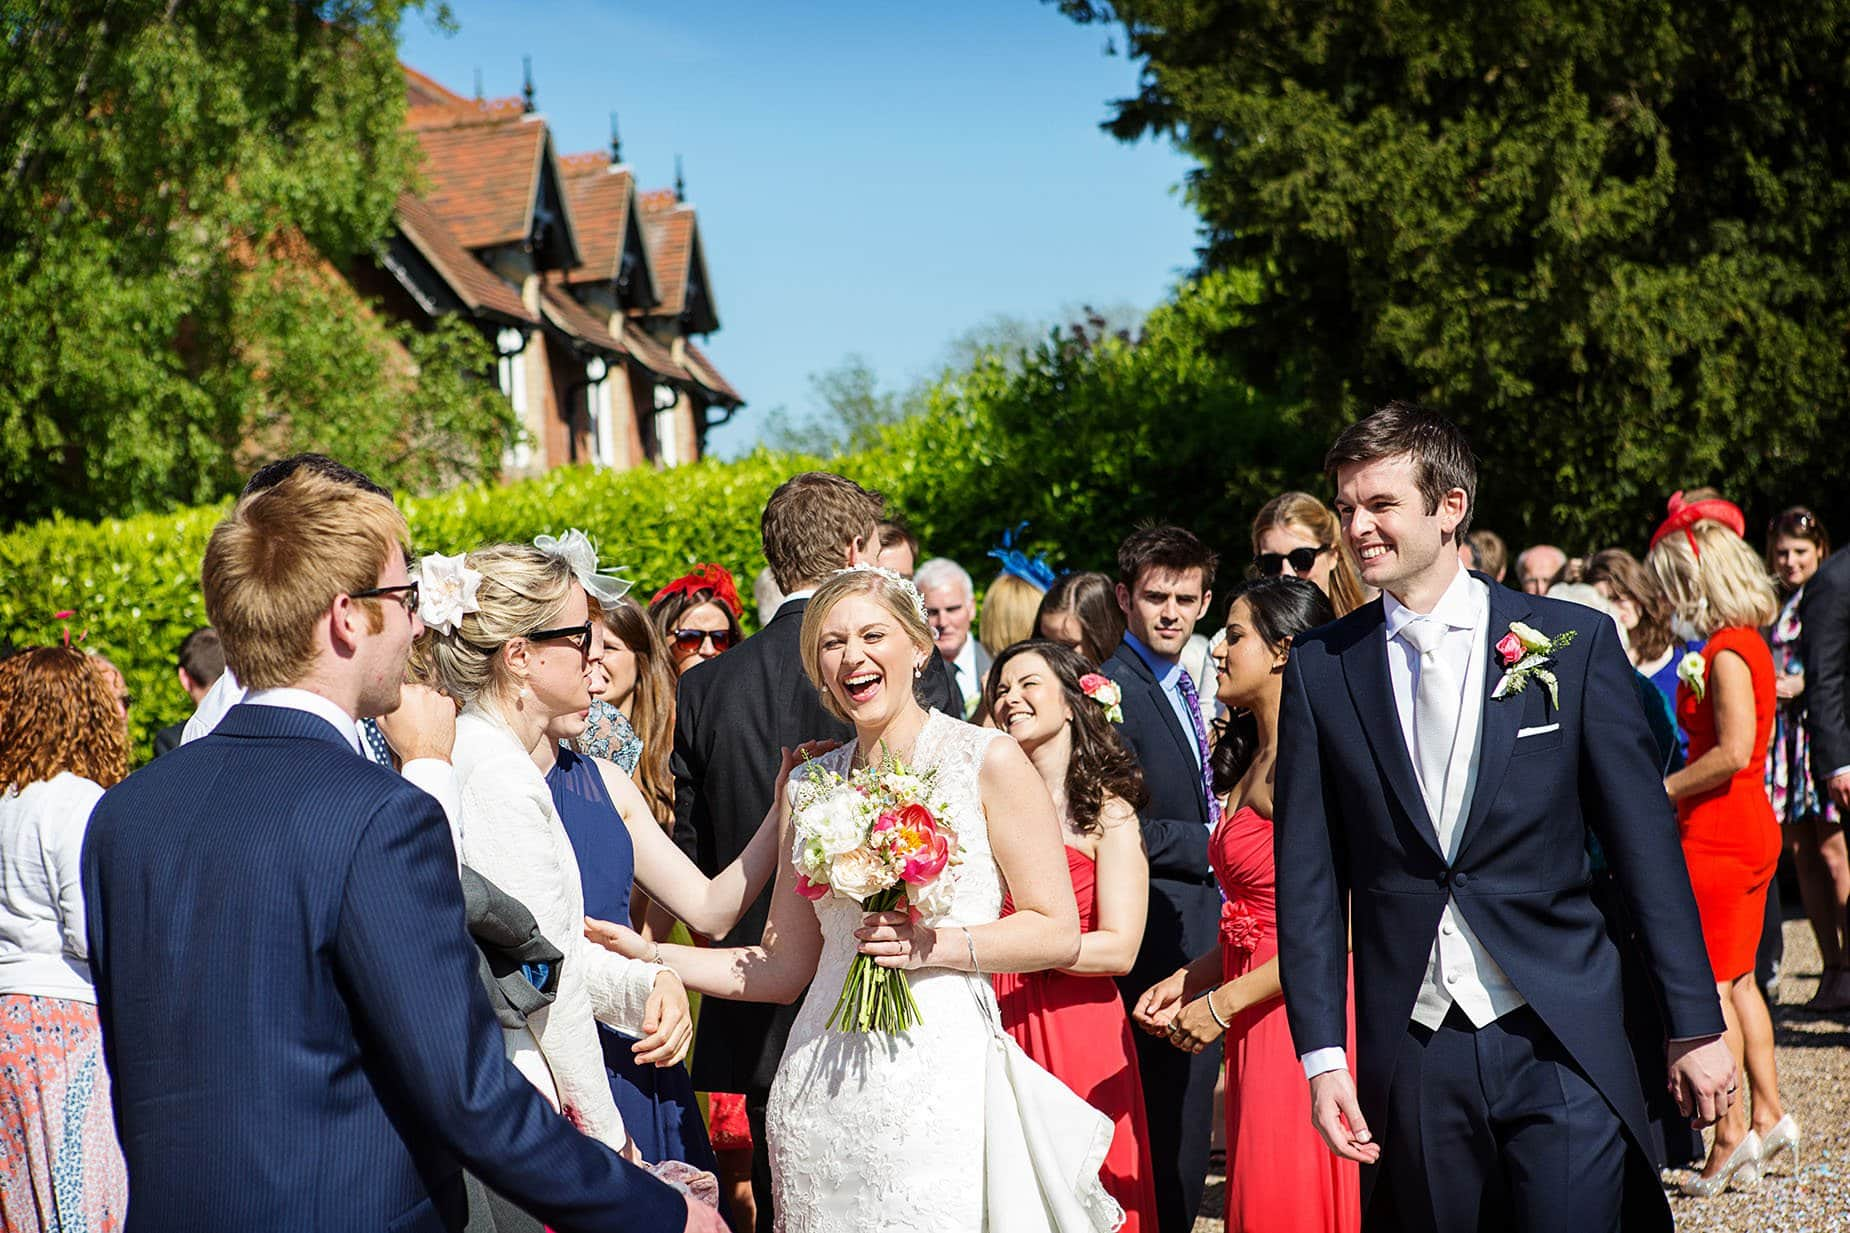 uk wedding photographer wedding guests outside church laughing